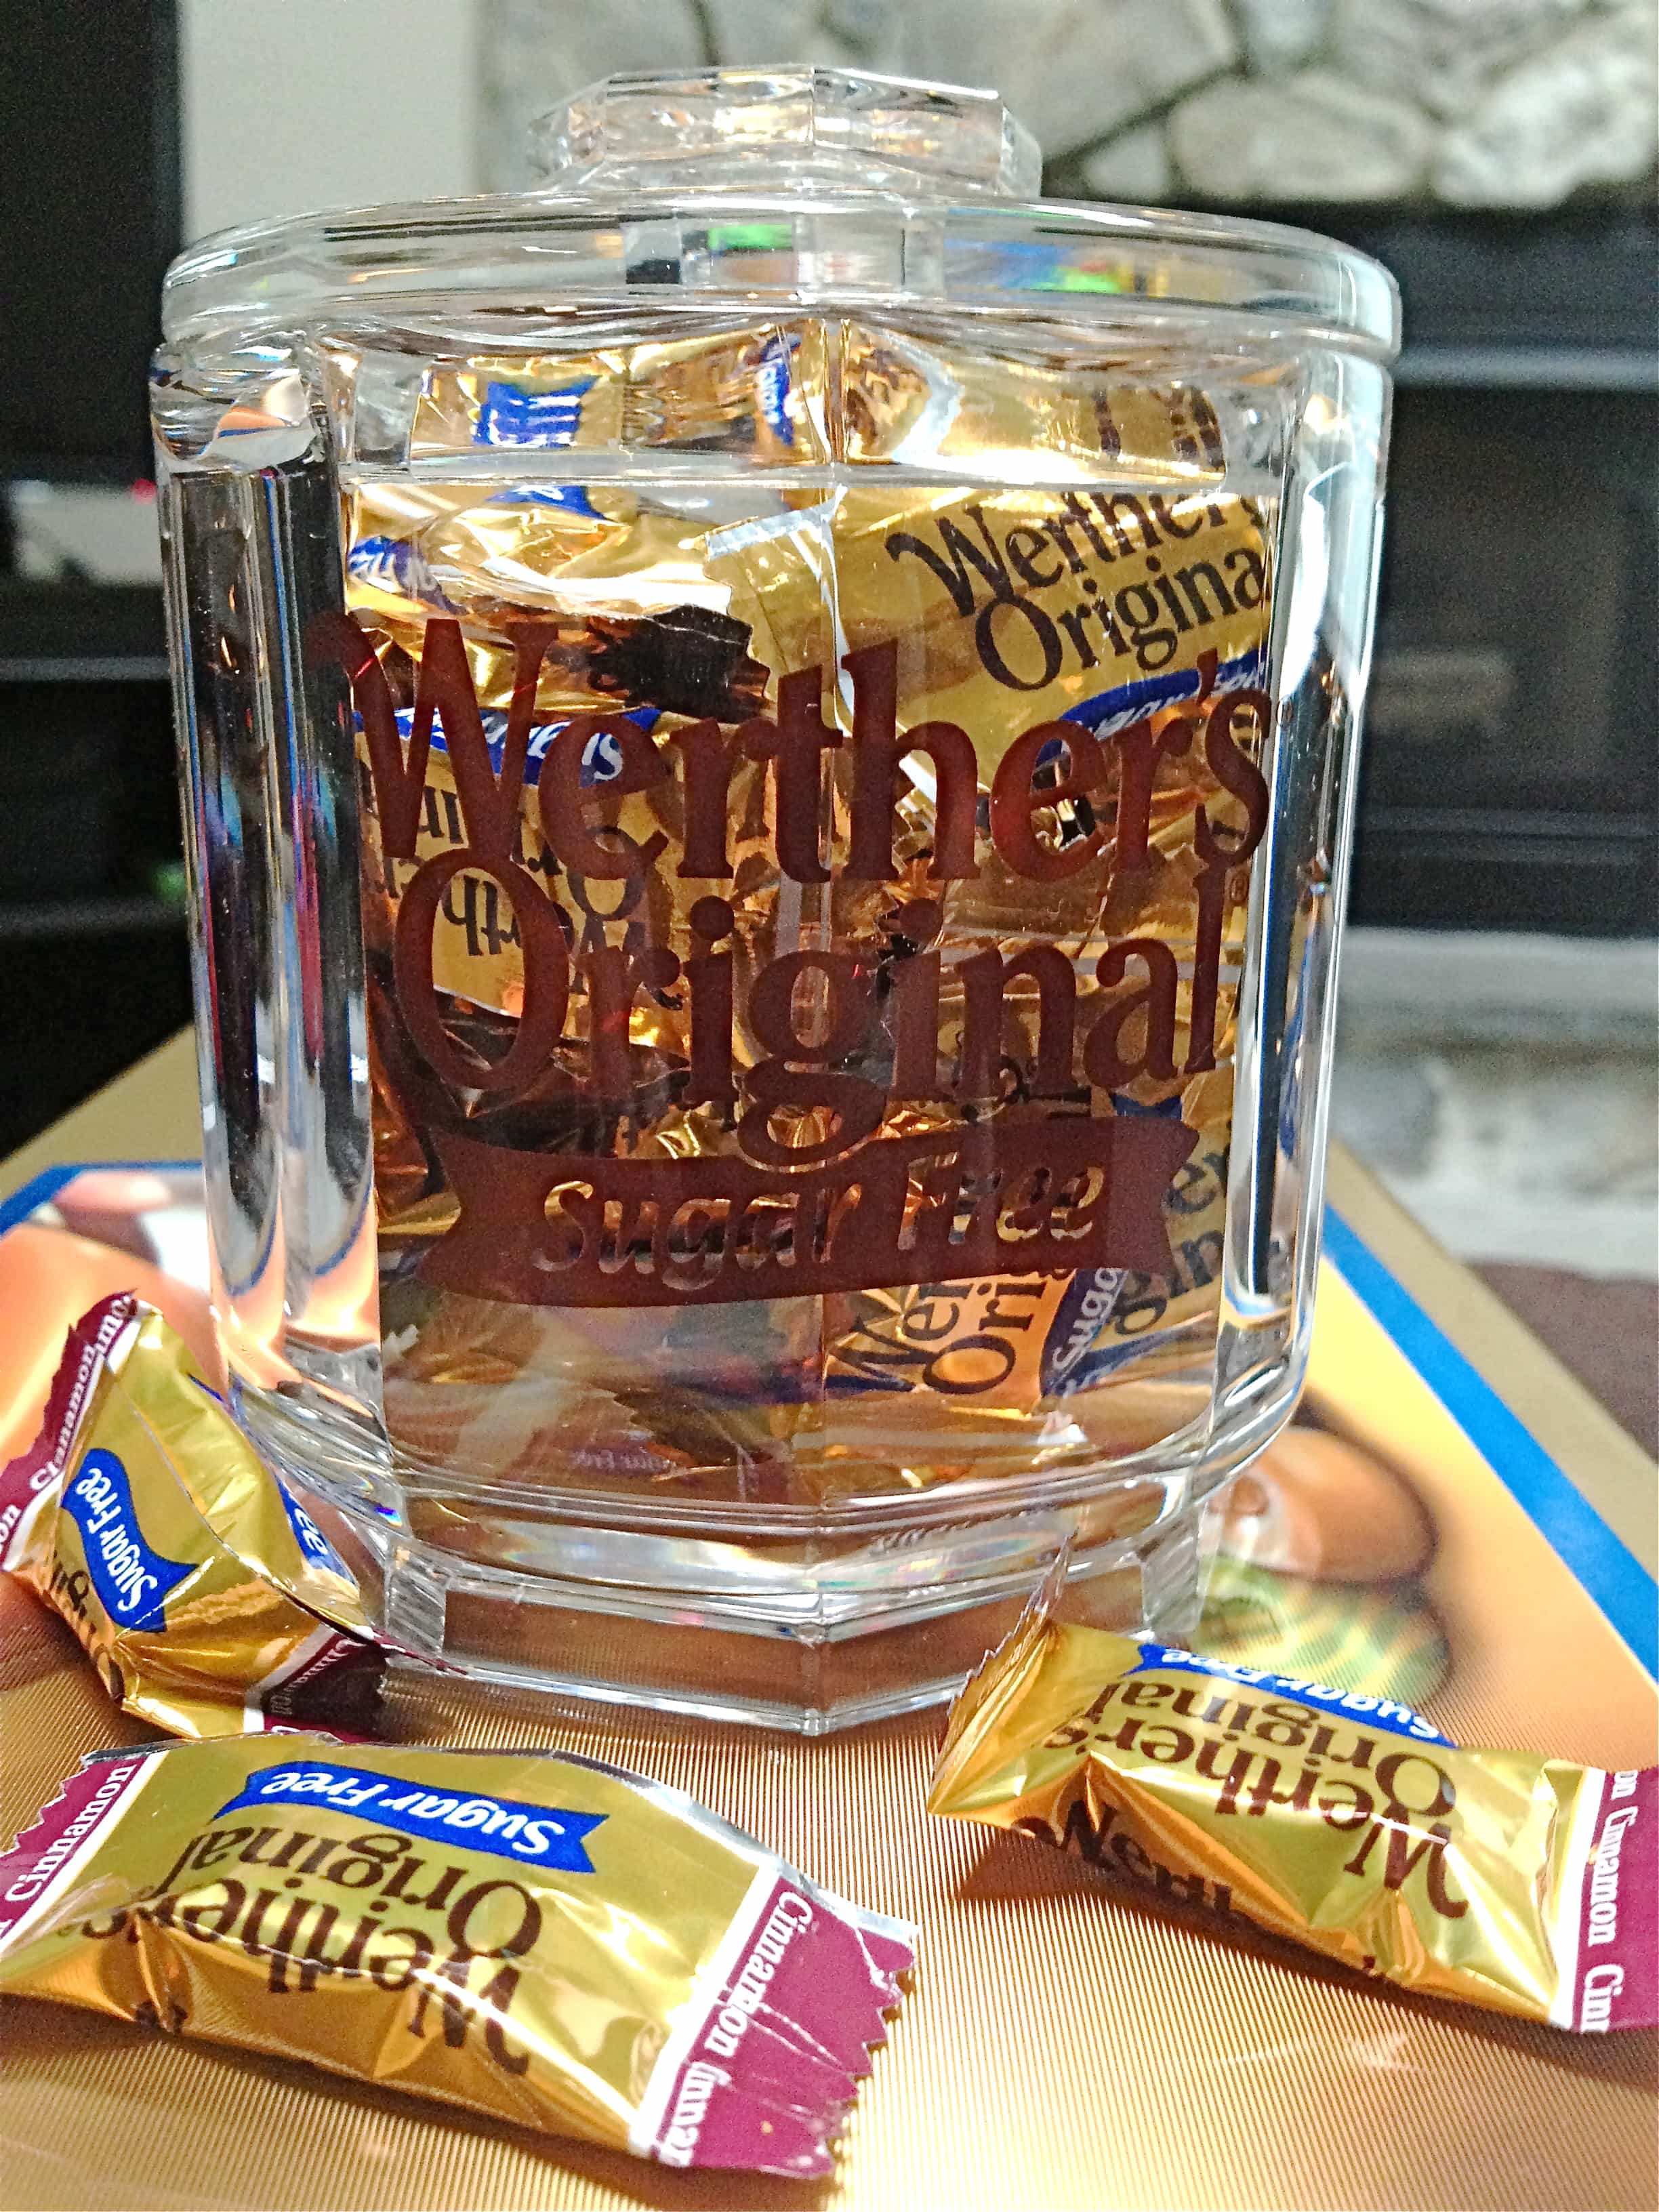 Werther's Original Sugar Free Caramel https://backforseconds.com